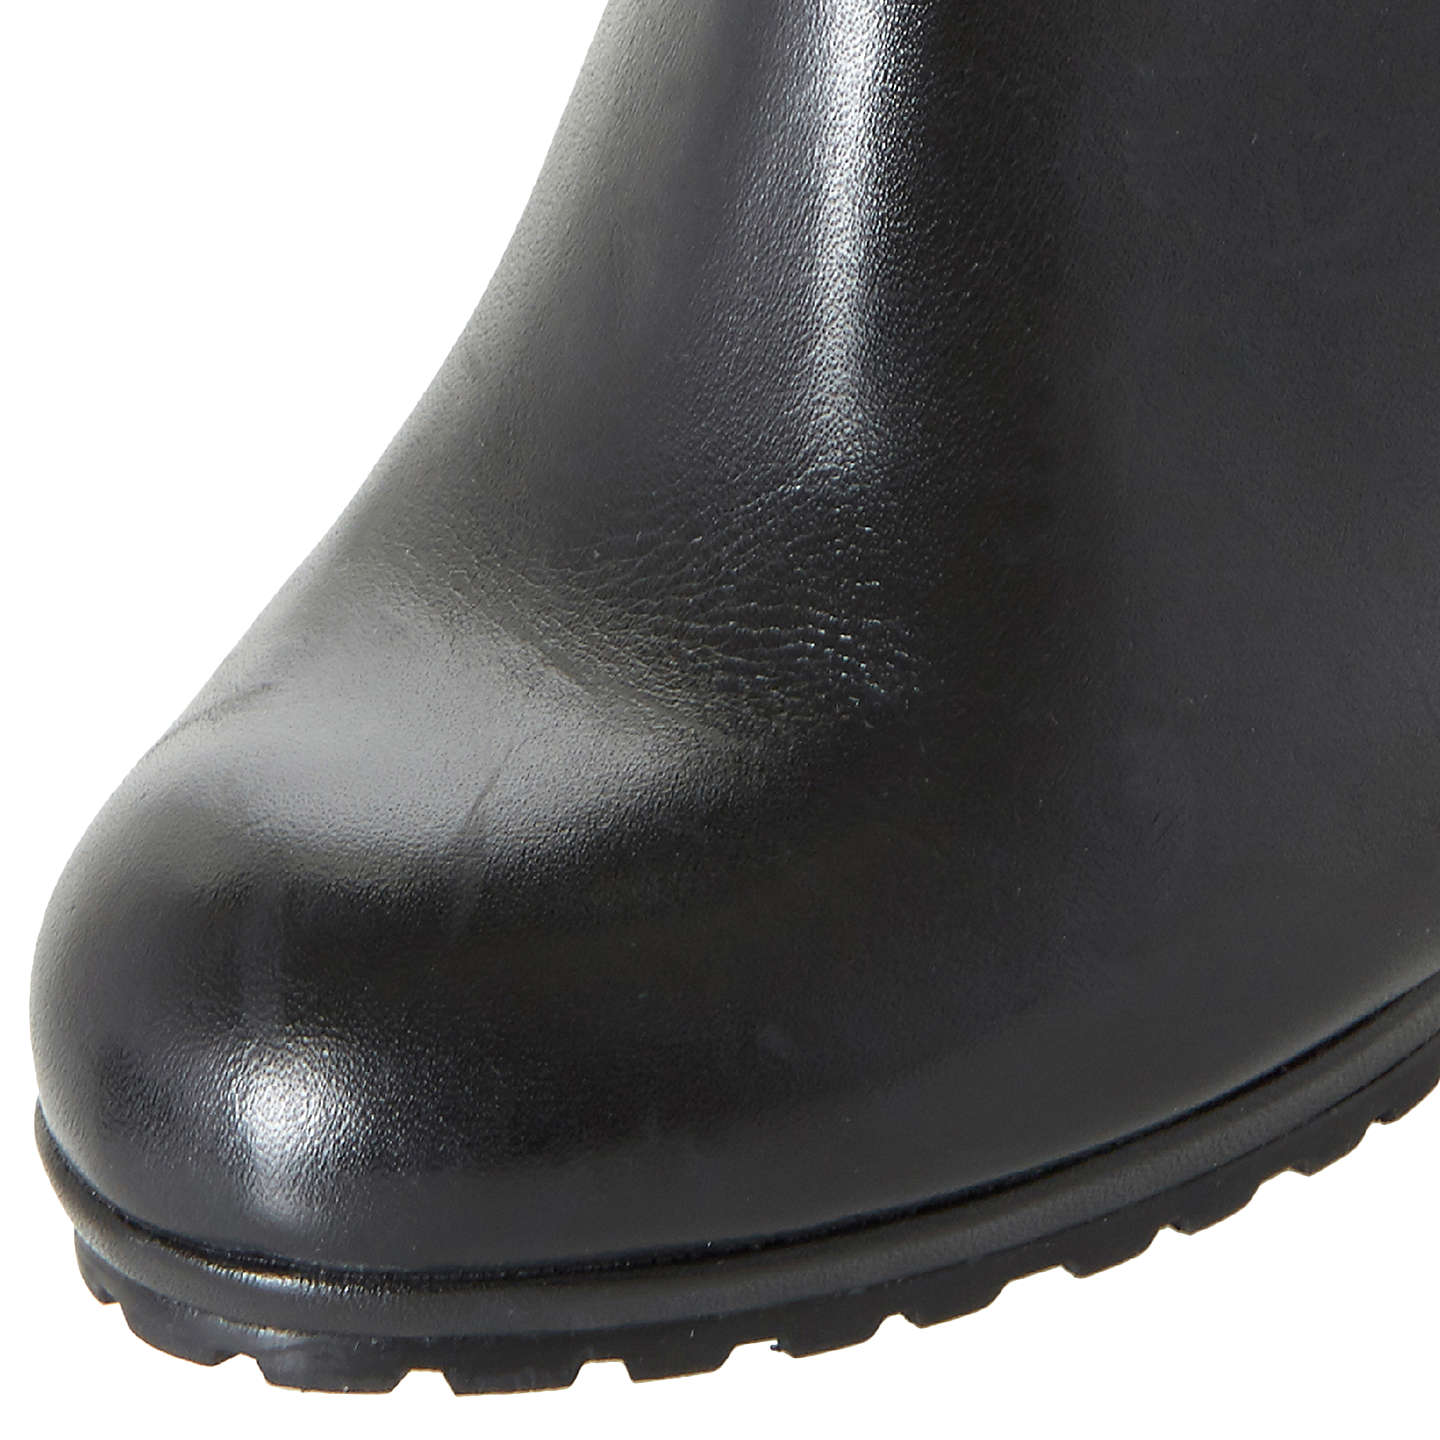 BuyDune Sebb Knee High Boots, Black, 3 Online at johnlewis.com